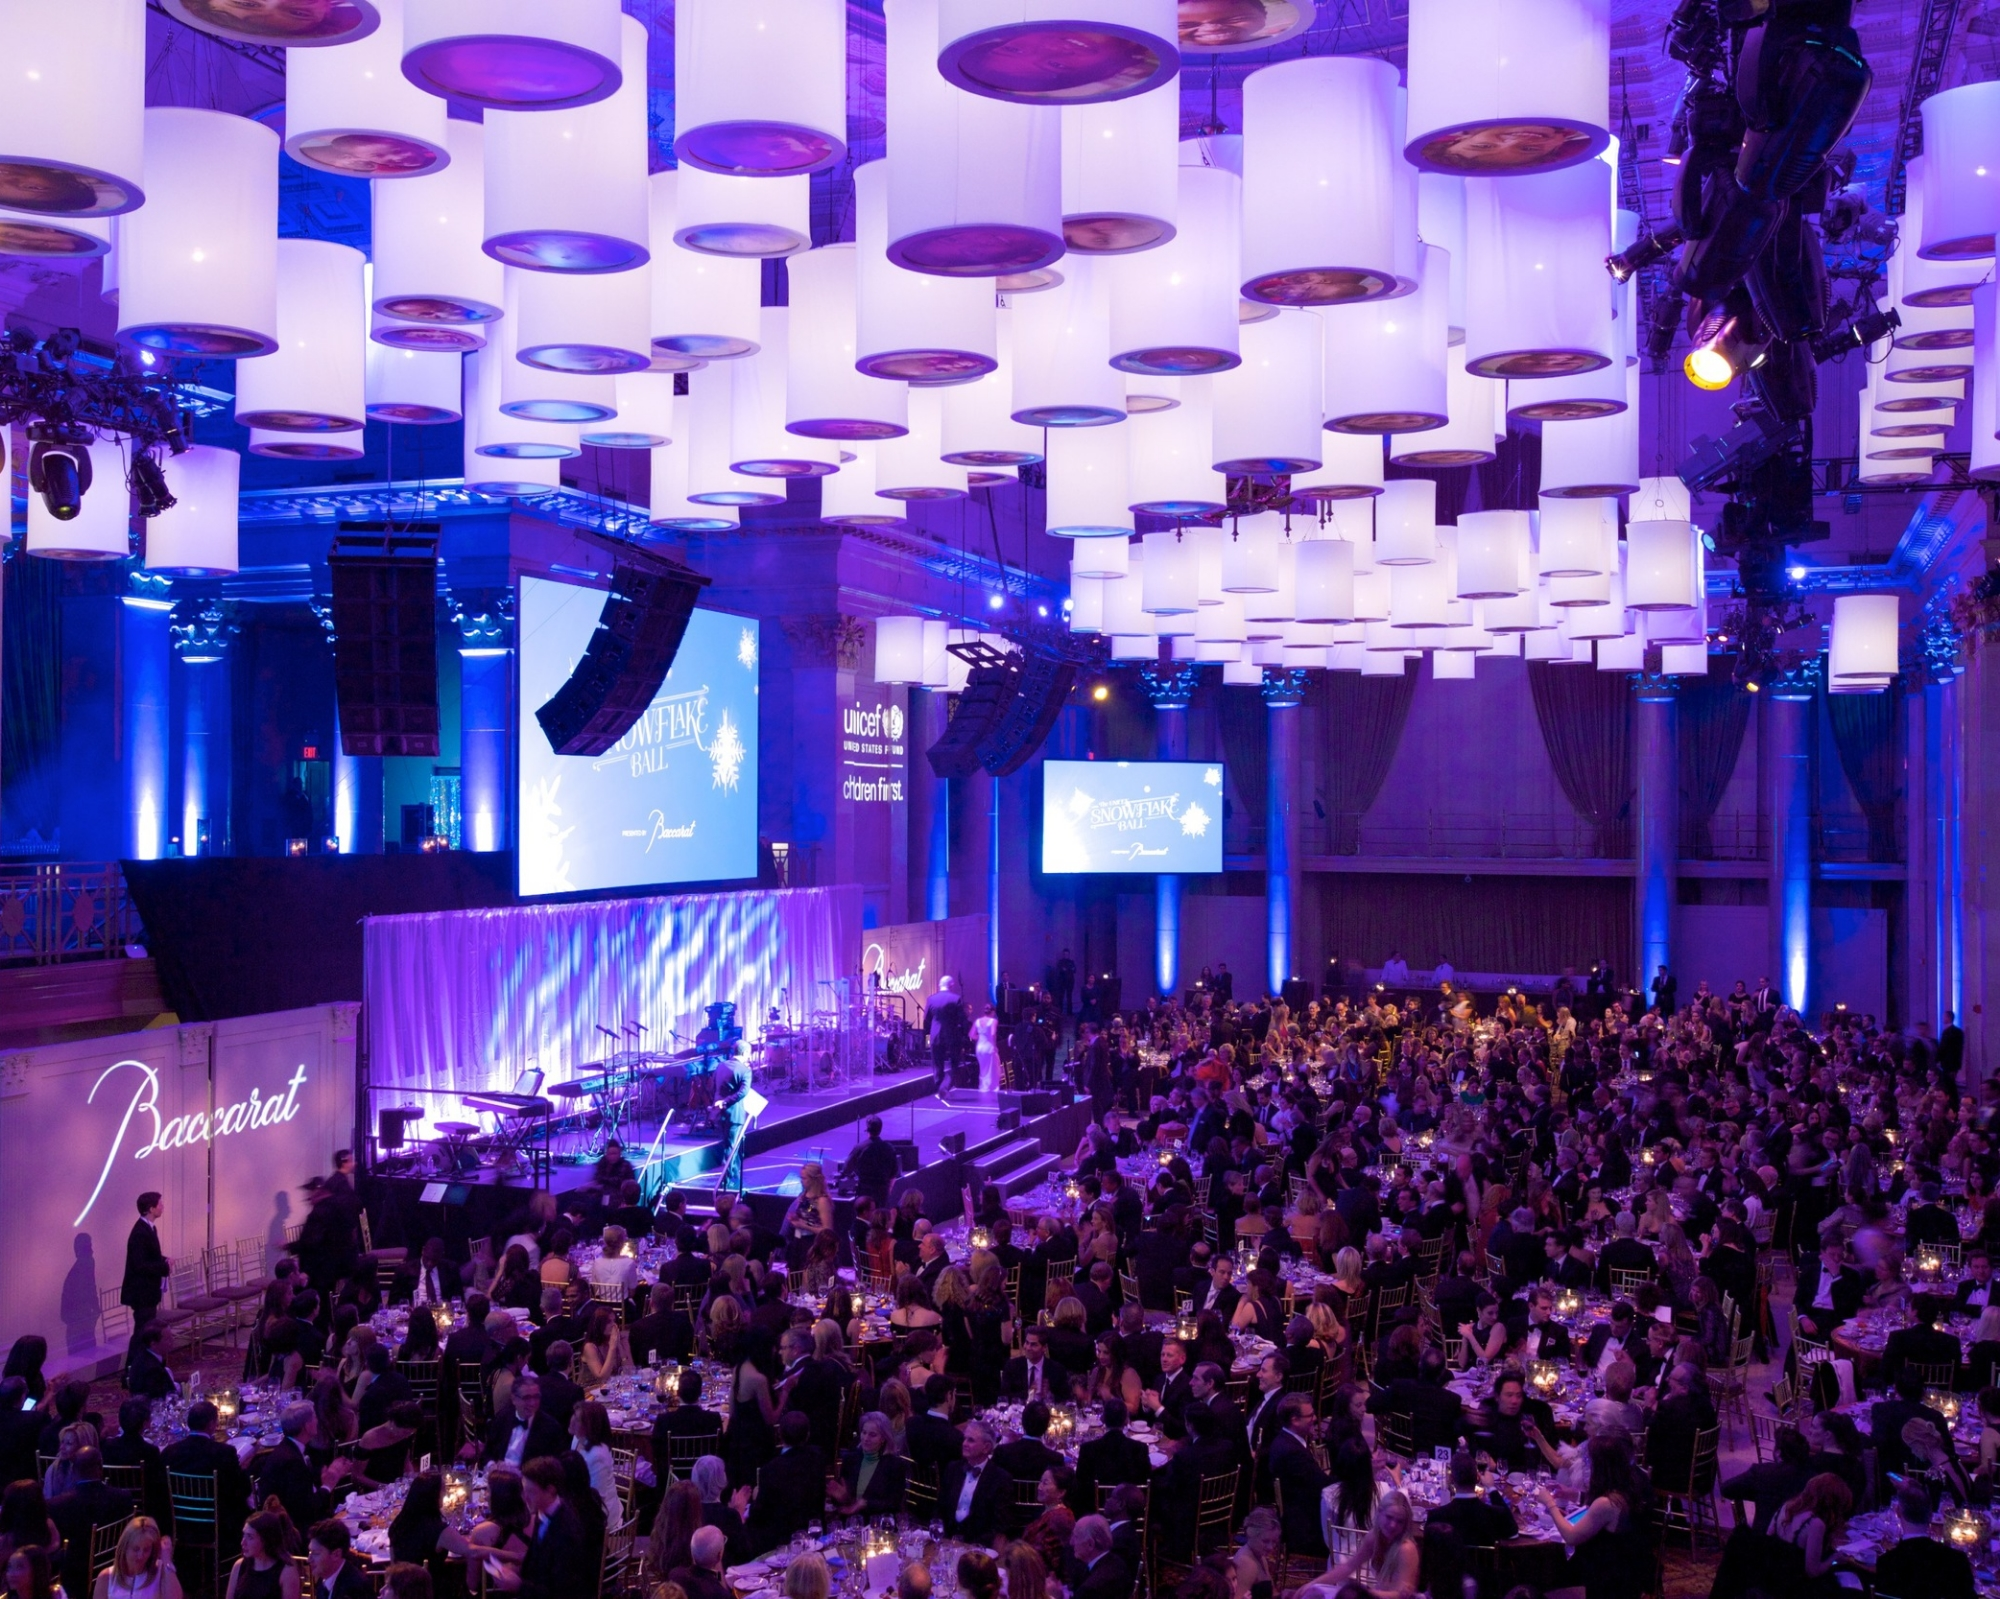 Décor at the 2014 UNICEF Snowflake Ball © 2014 Julie Skarratt Photography Inc./U.S. Fund for UNICEF